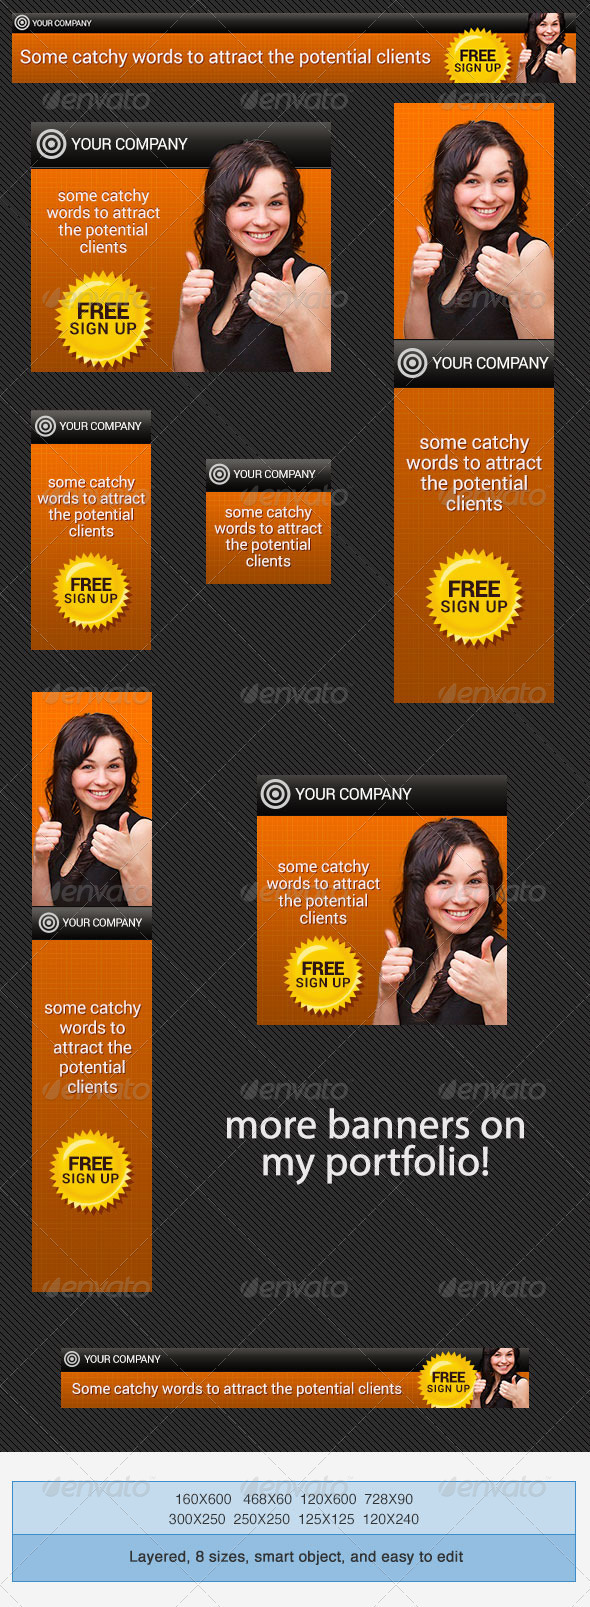 Psd Banner Ads Templates Graphics Designs Templates